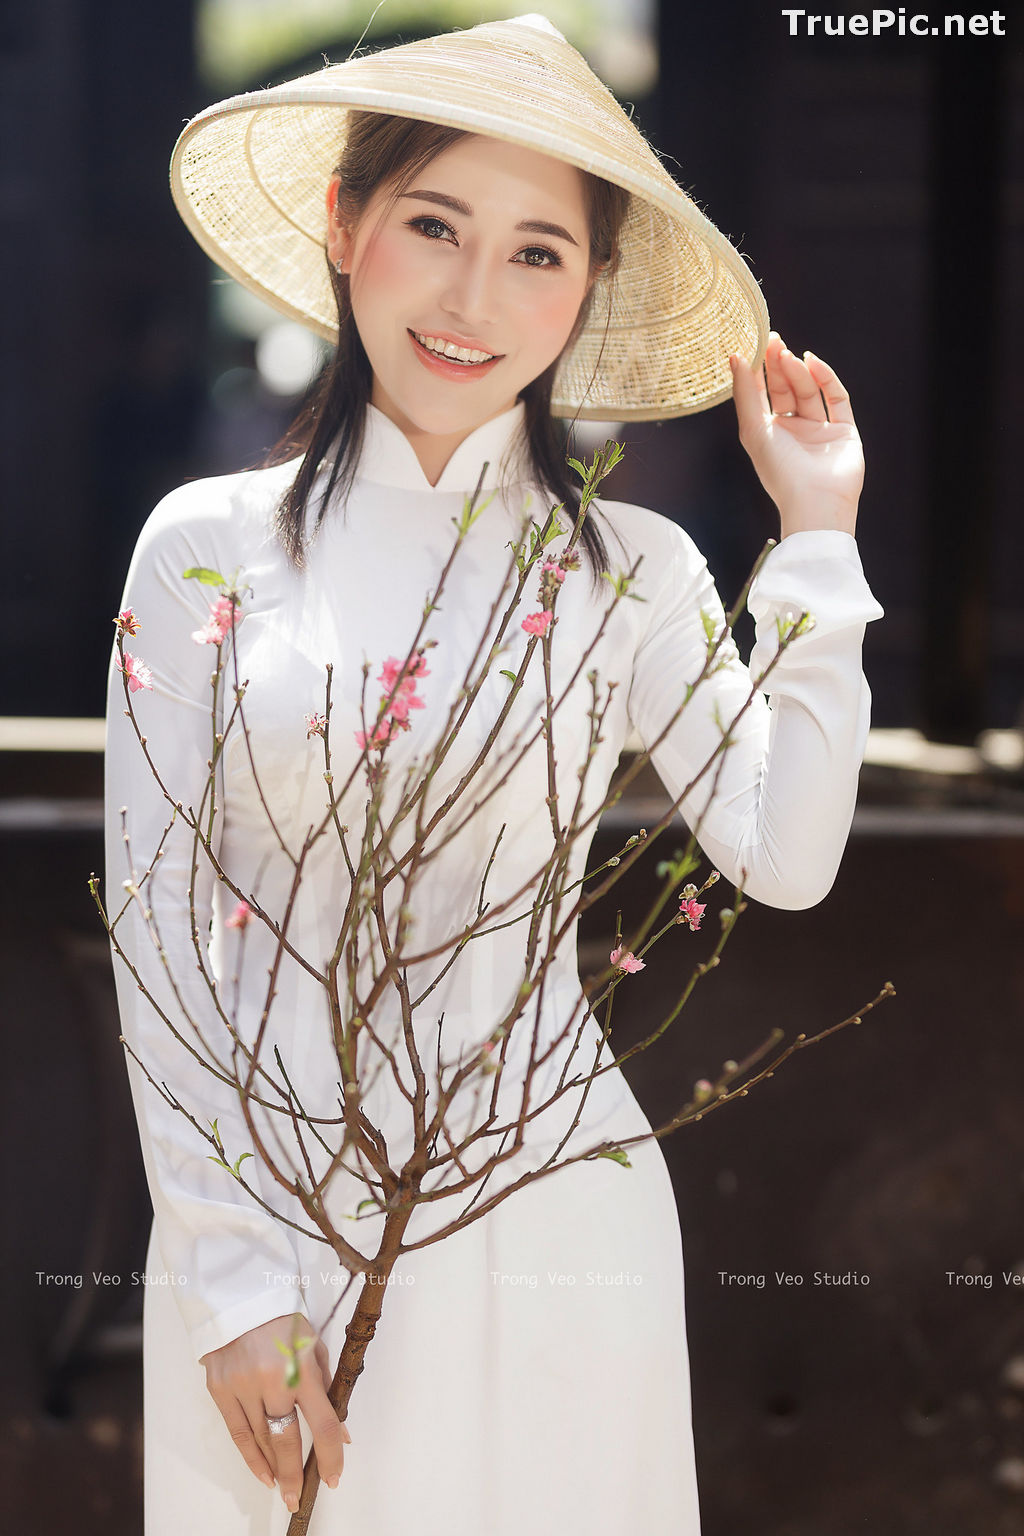 Image The Beauty of Vietnamese Girls with Traditional Dress (Ao Dai) #4 - TruePic.net - Picture-3